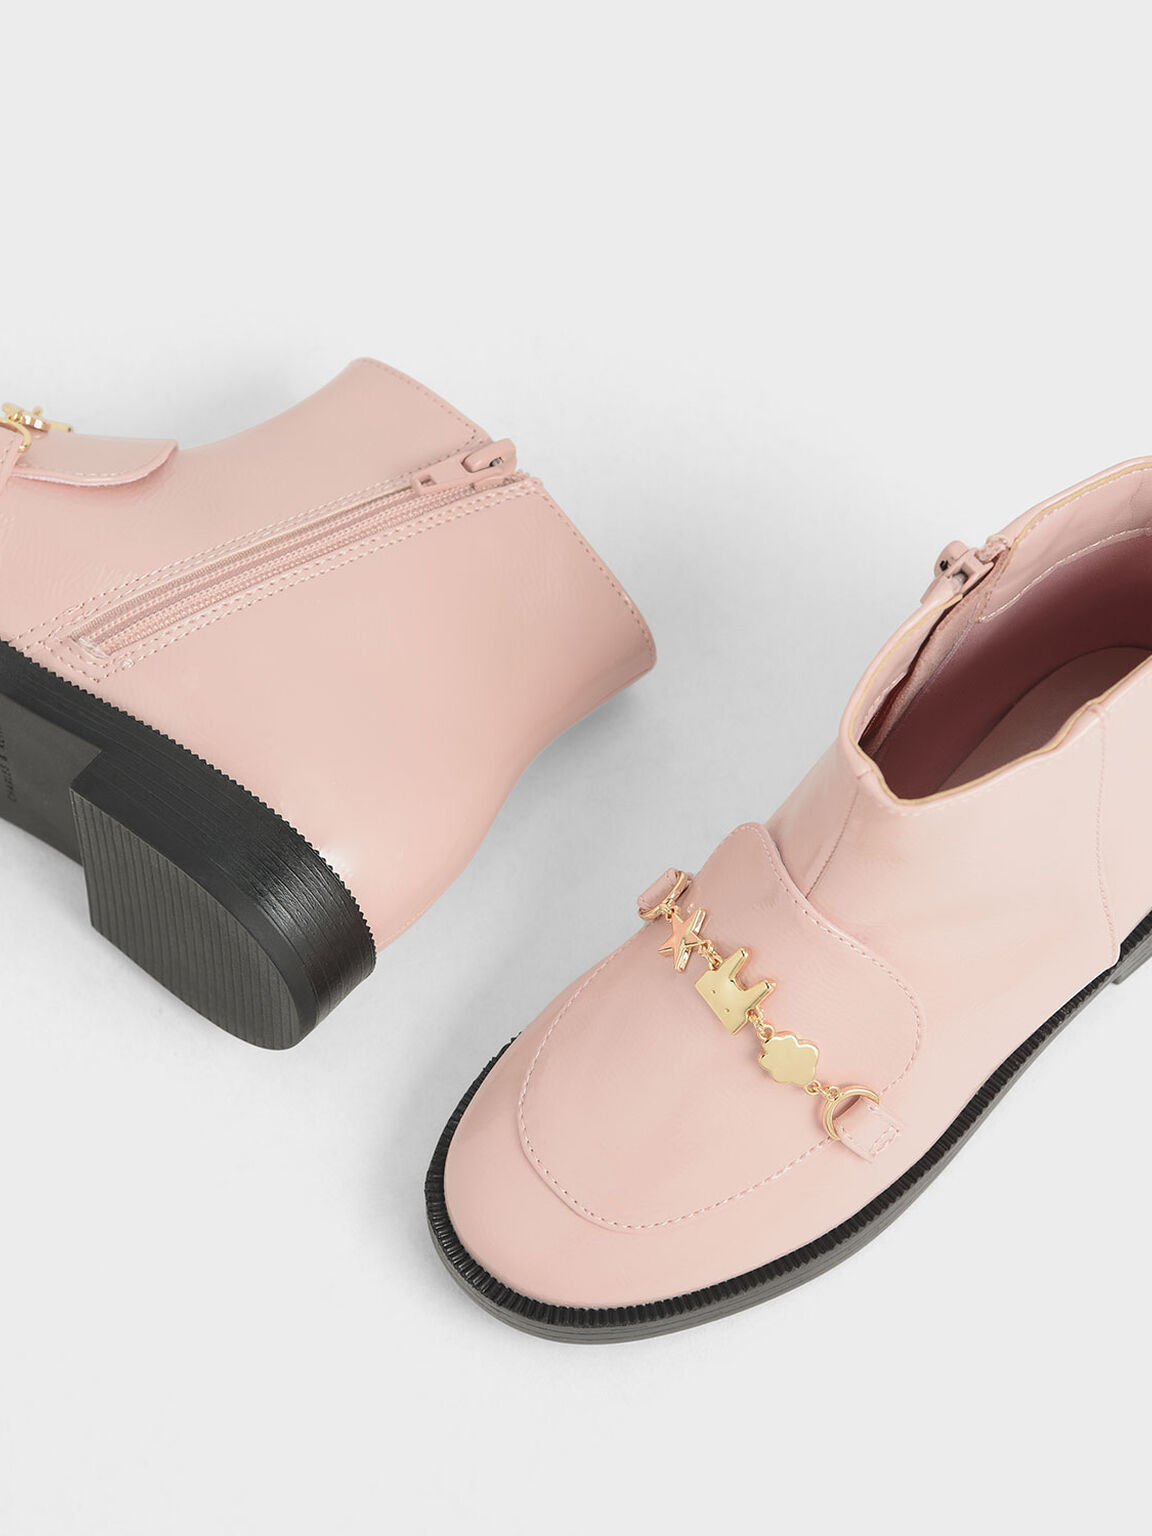 Girl's Wrinkled Patent Charm Ankle Boots, Pink, hi-res